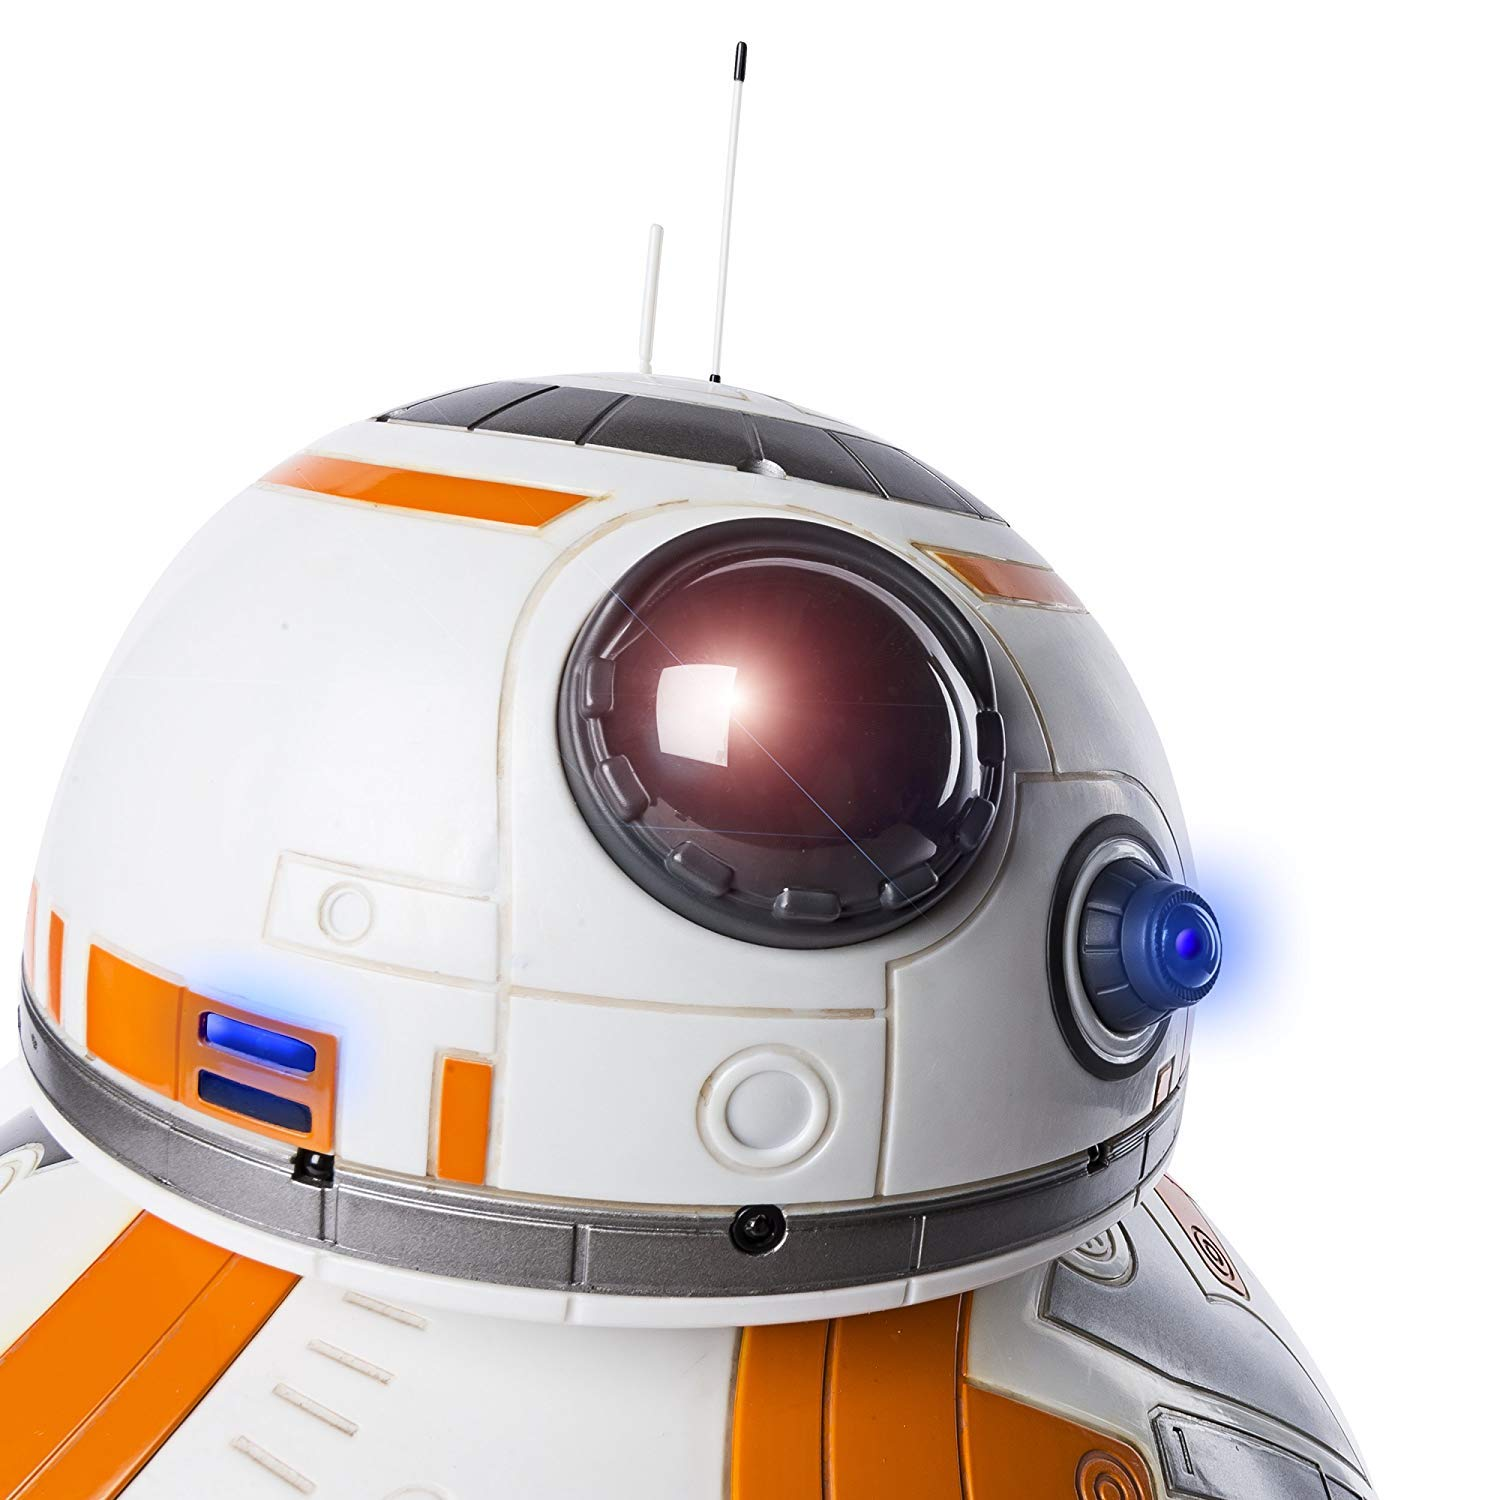 BB8 Star Wars Hero Droid Star Wars Hero Droid BB-8 Fully Interactive Droid by BB8 (Image #5)